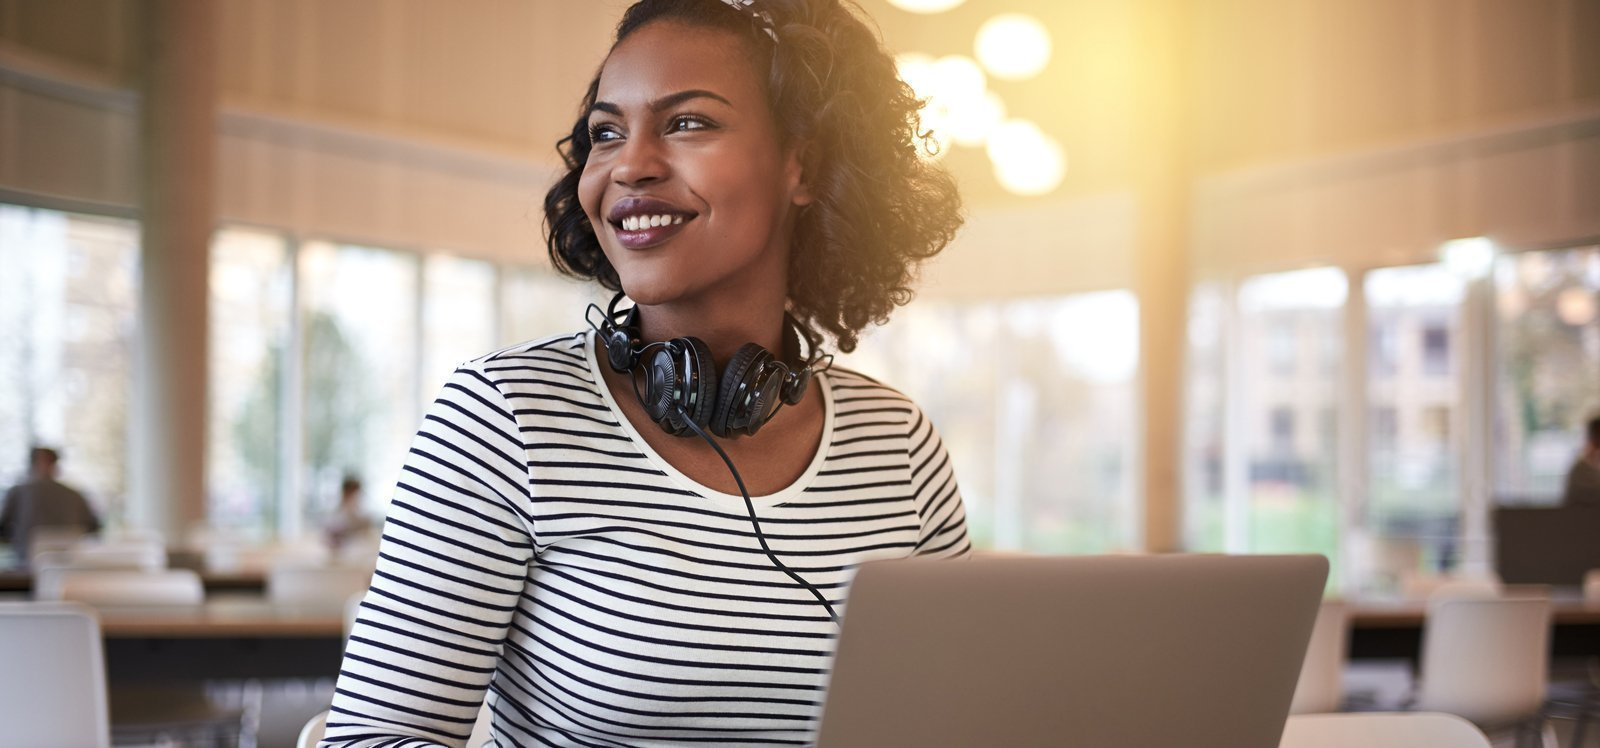 Woman in black and white striped shirt smiling with laptop